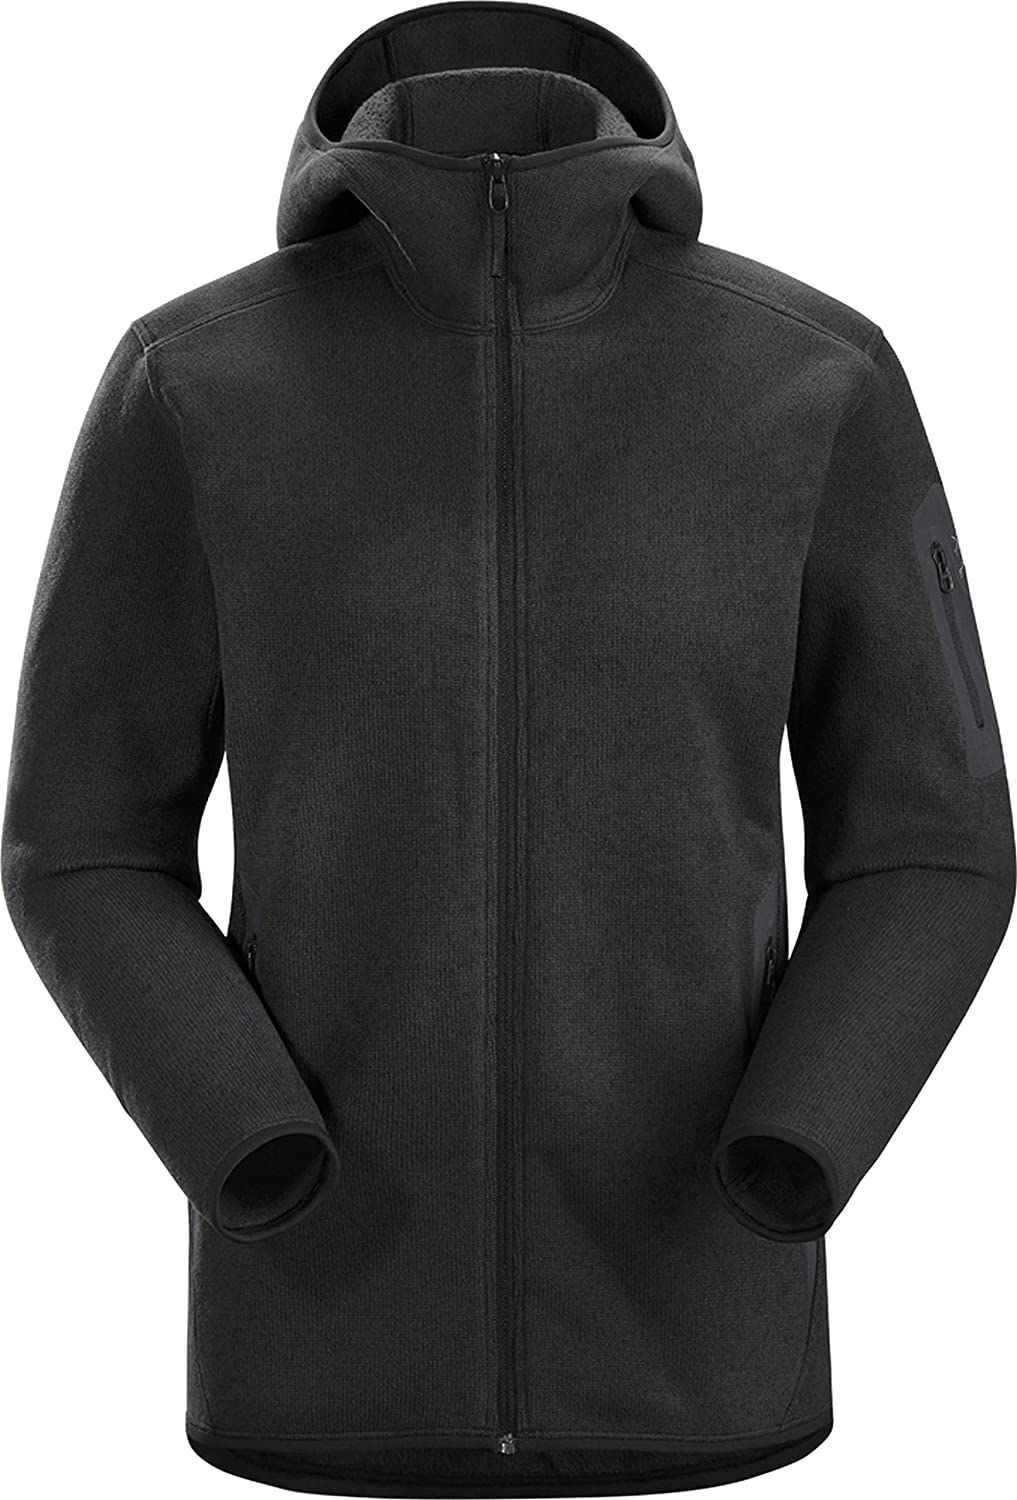 Image of Active Hoodies Arc'teryx Covert Hoody Women's